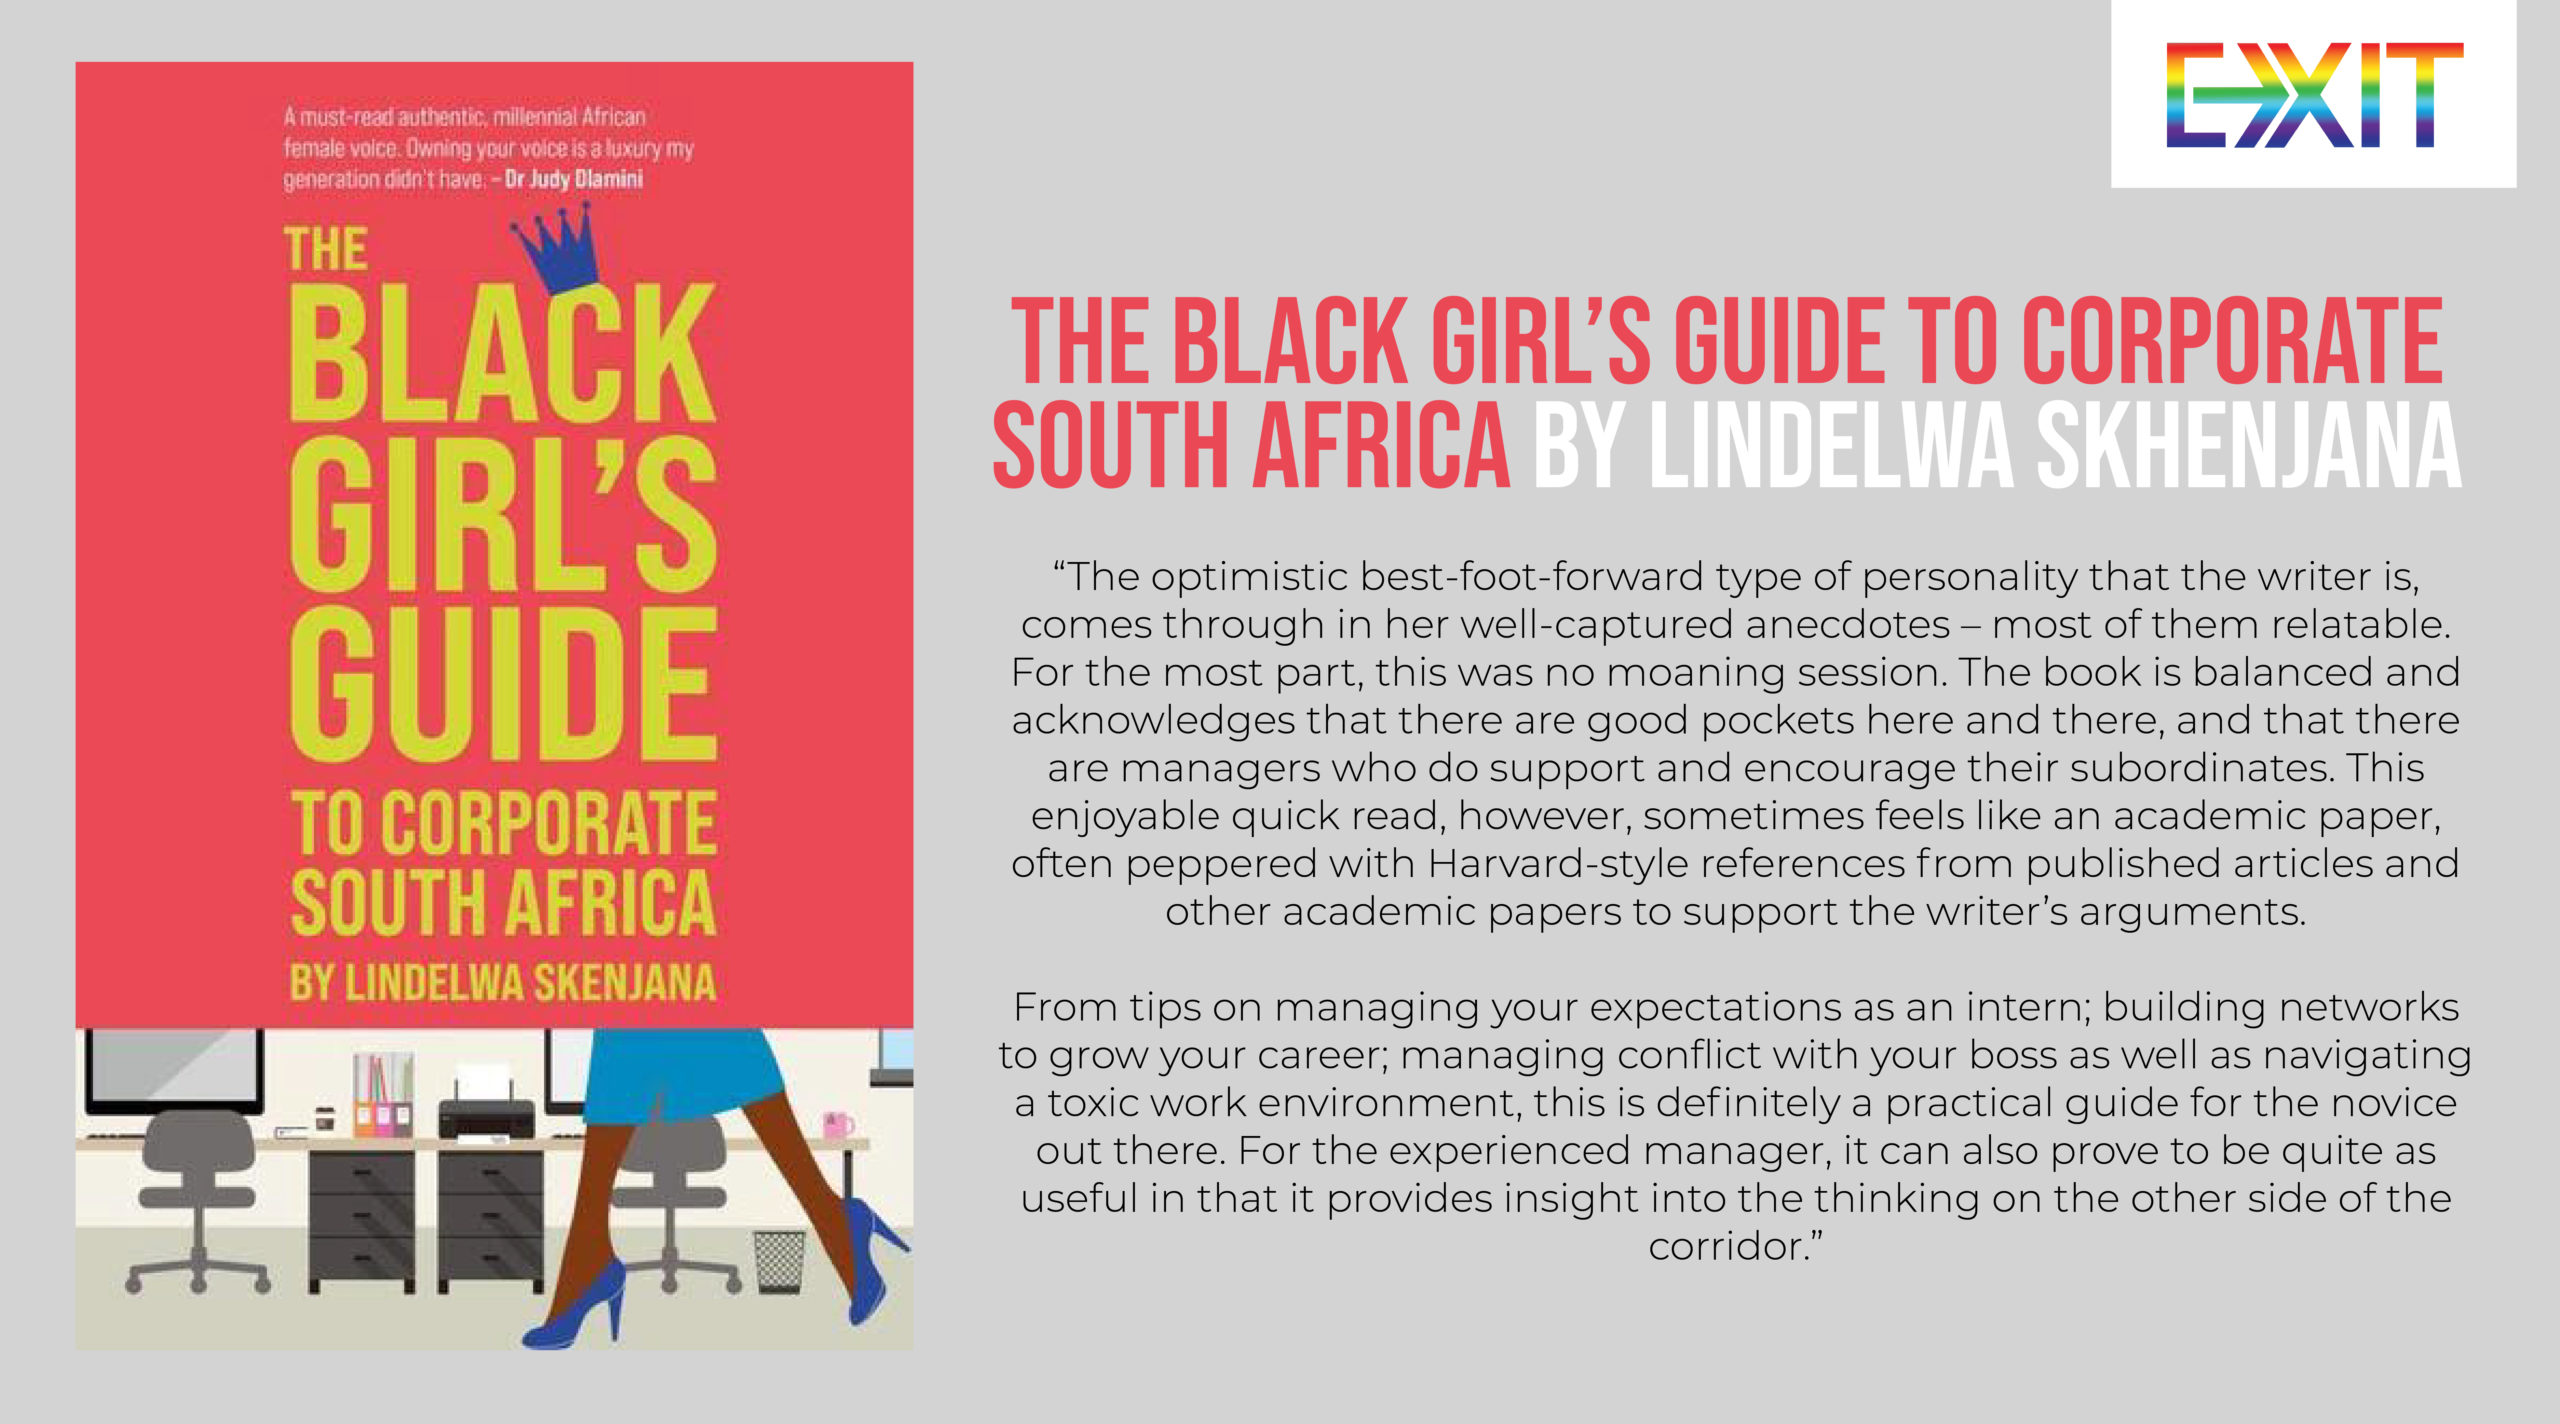 THE BLACK GIRL'S GUIDE TO CORPORATE SOUTH AFRICA REVIEW